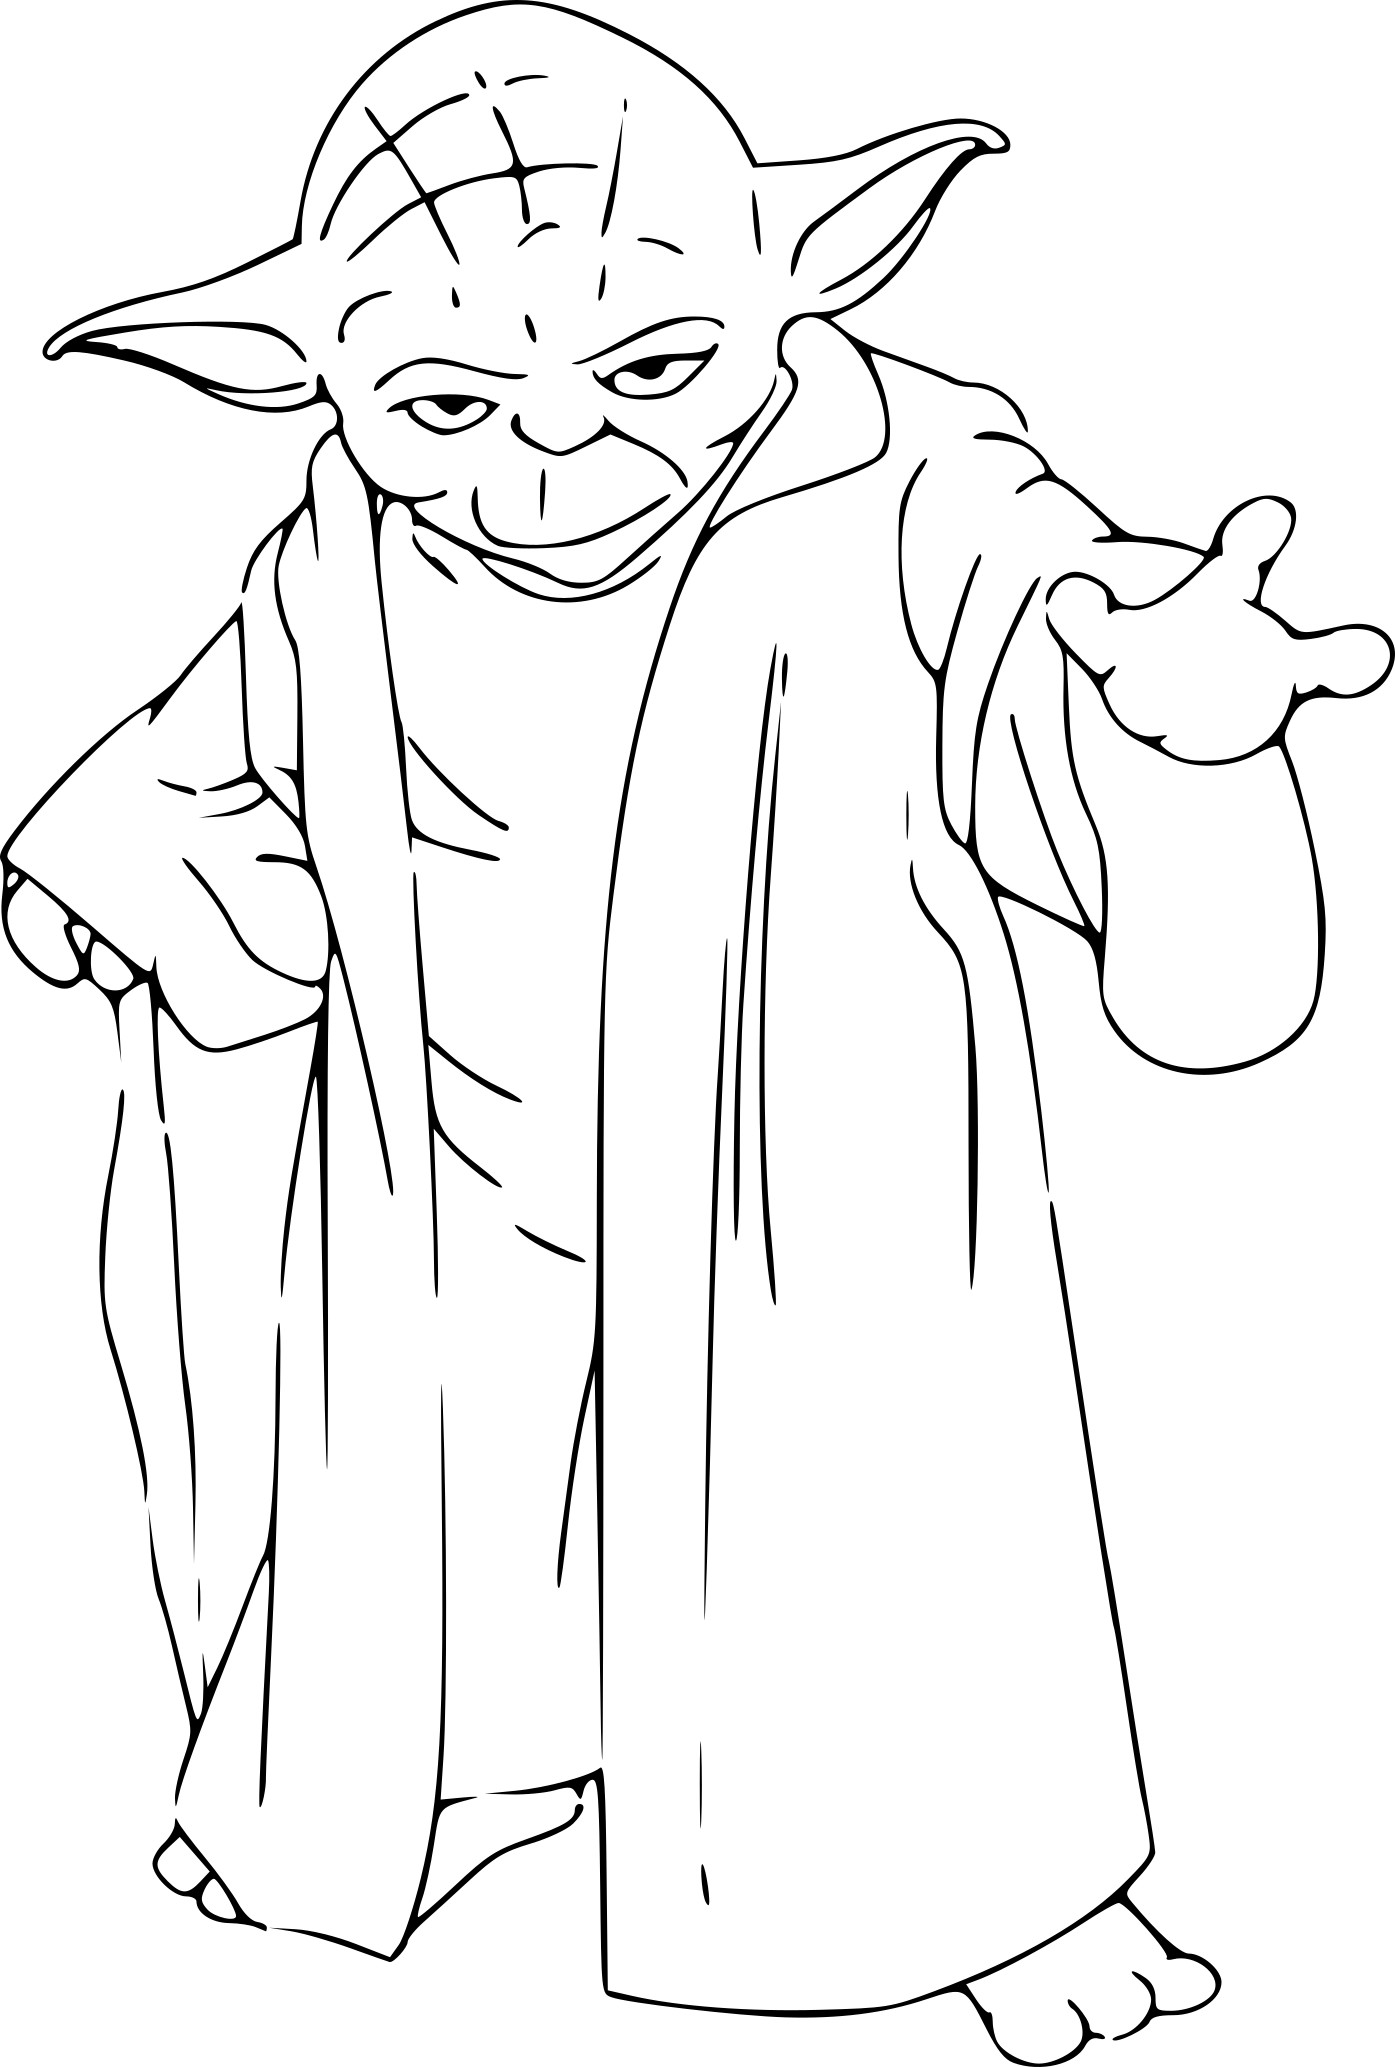 Maitre yoda coloriage my blog - Yoda coloriage ...